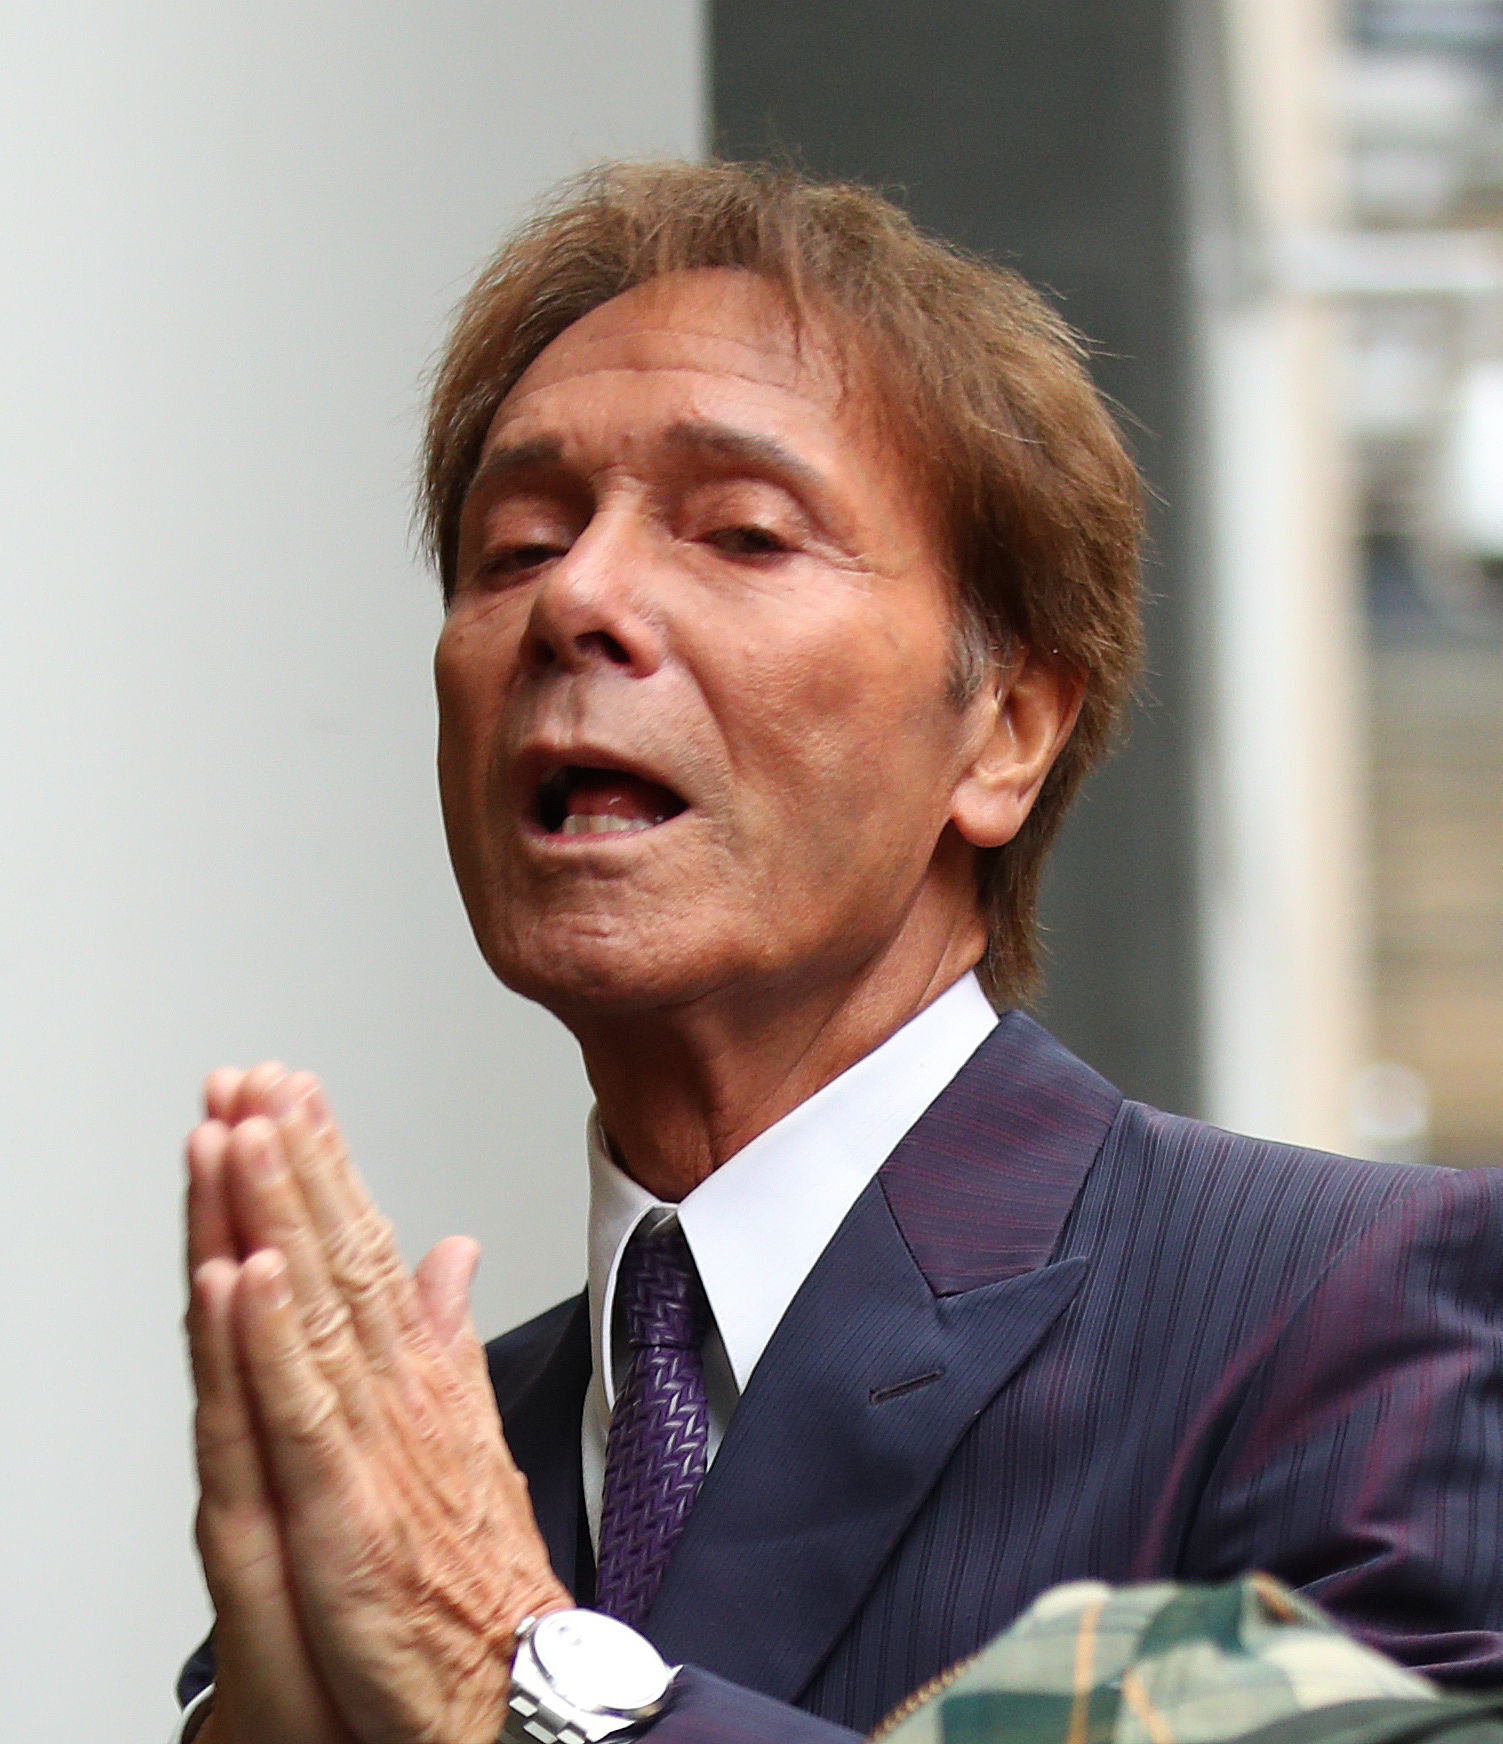 Sir Cliff Richard to give evidence in BBC High Court trial